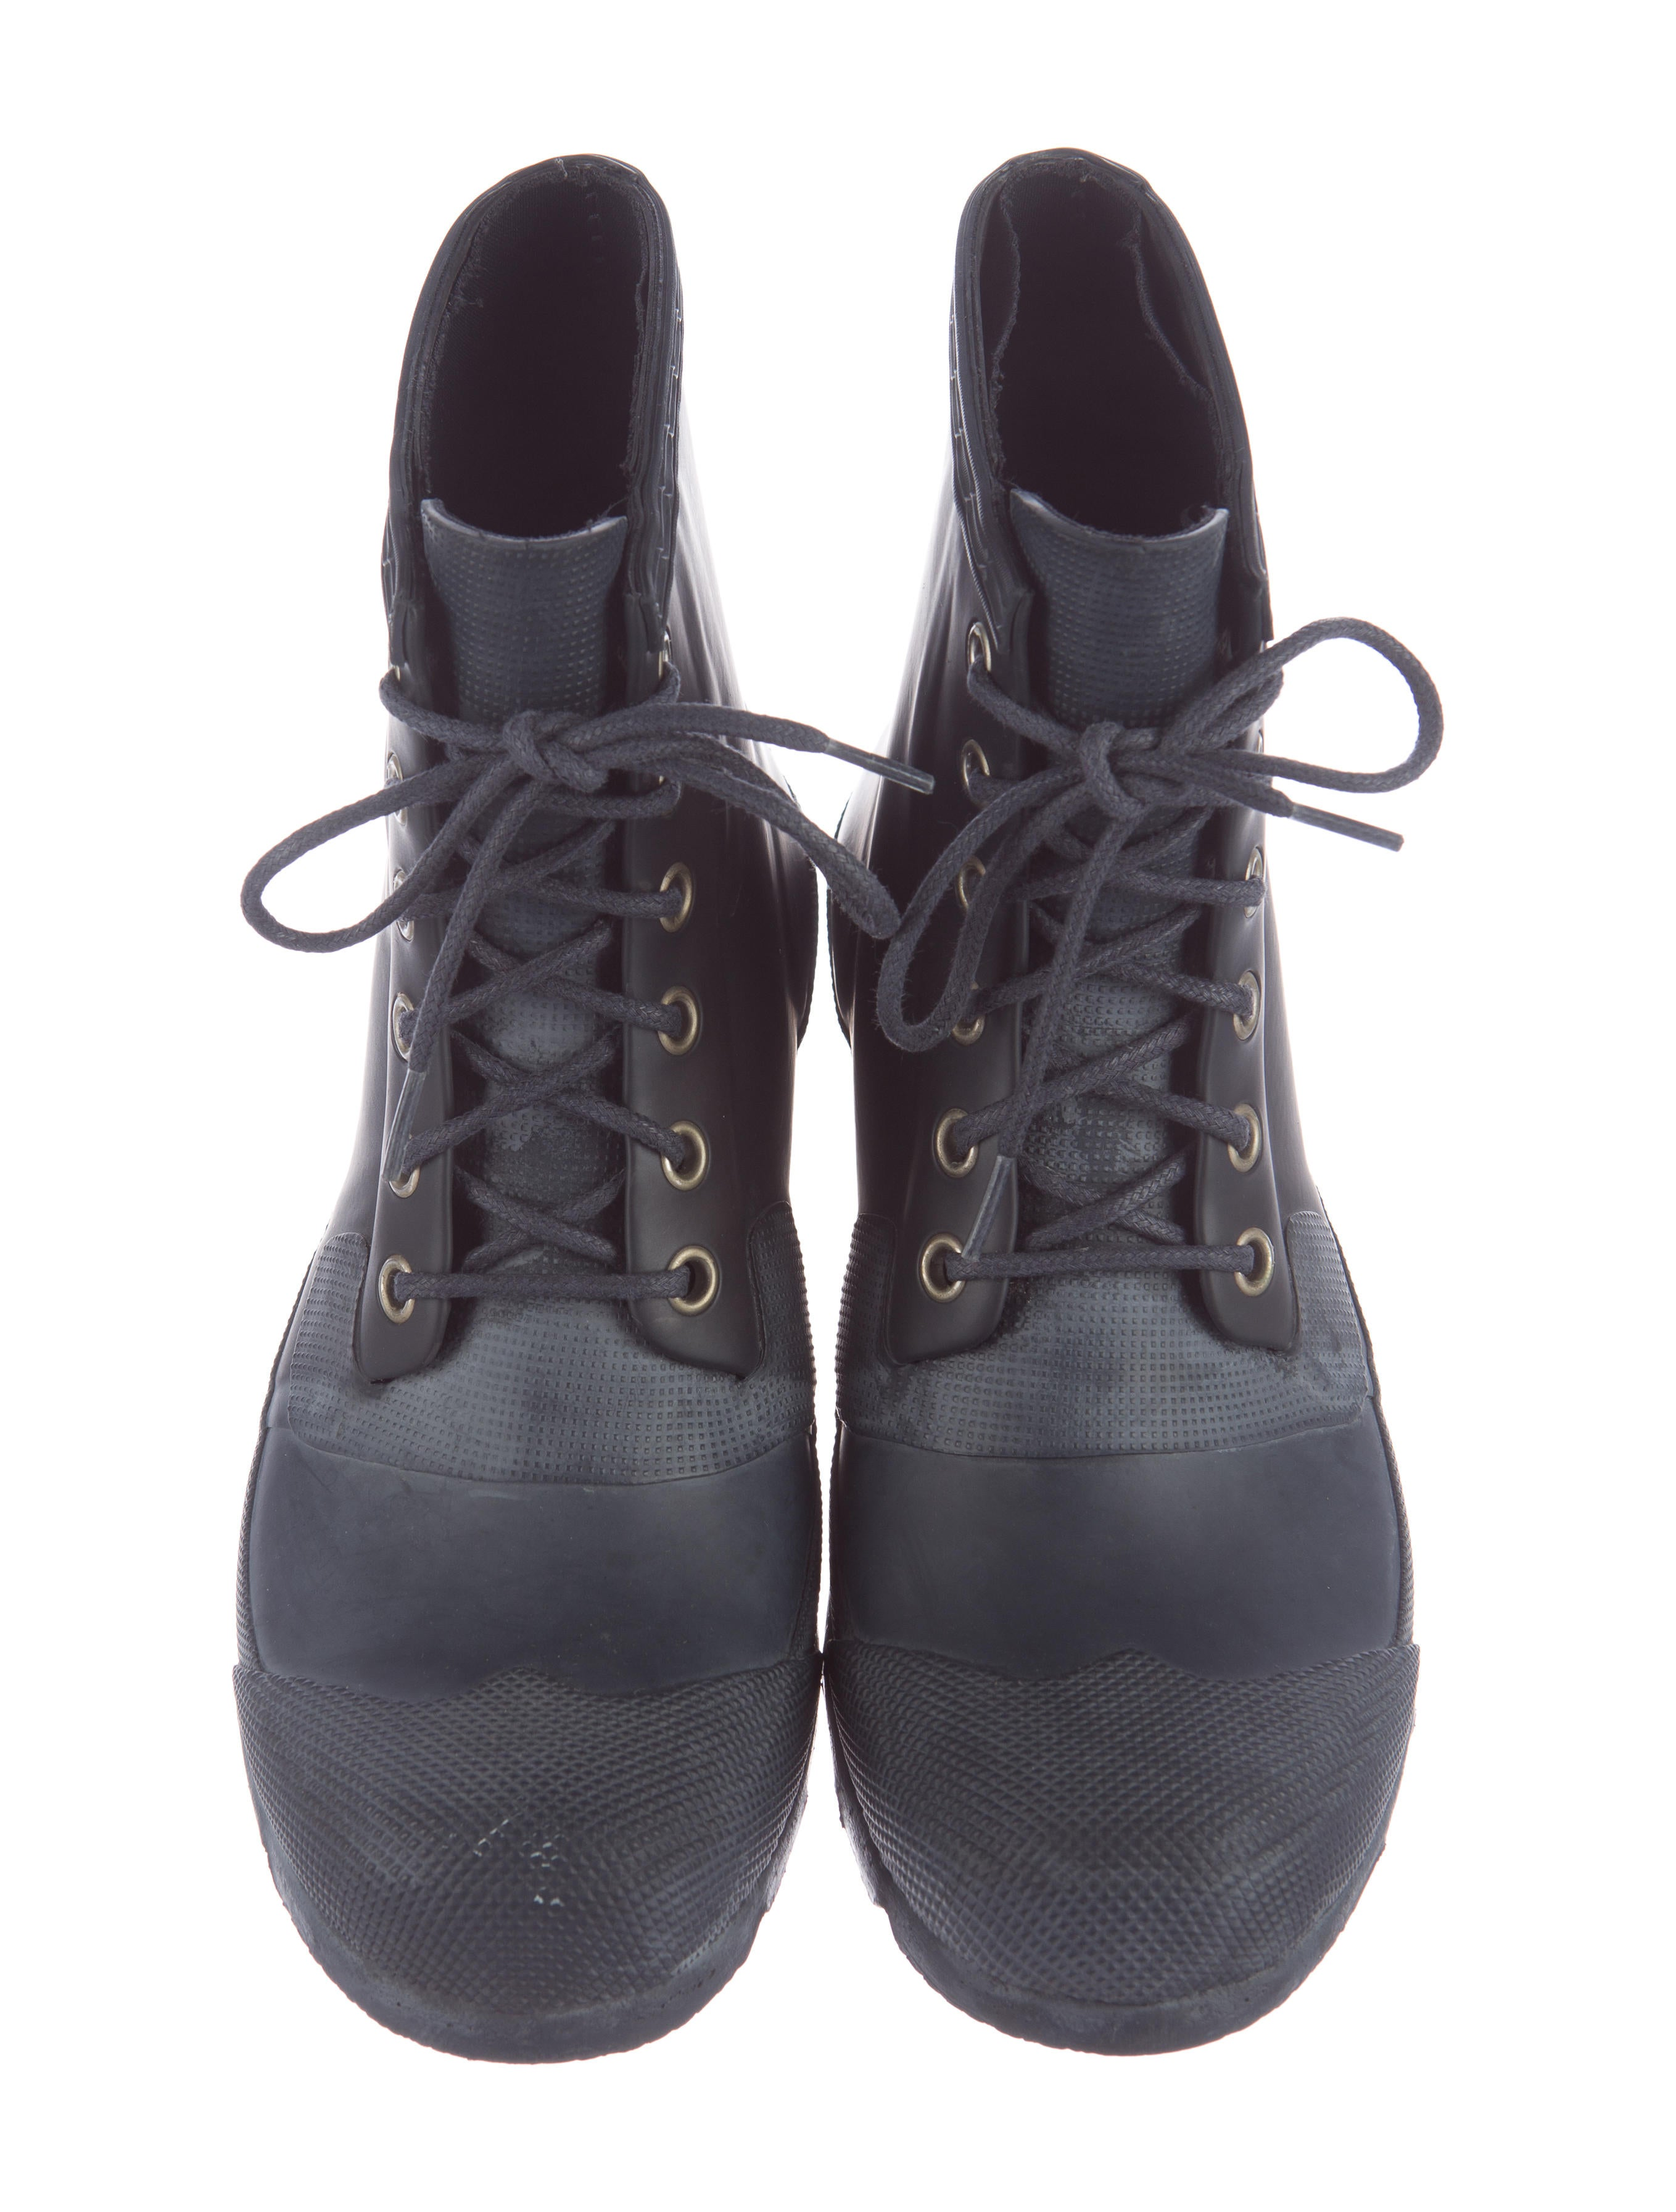 rubber boots shoes wh821582 the realreal